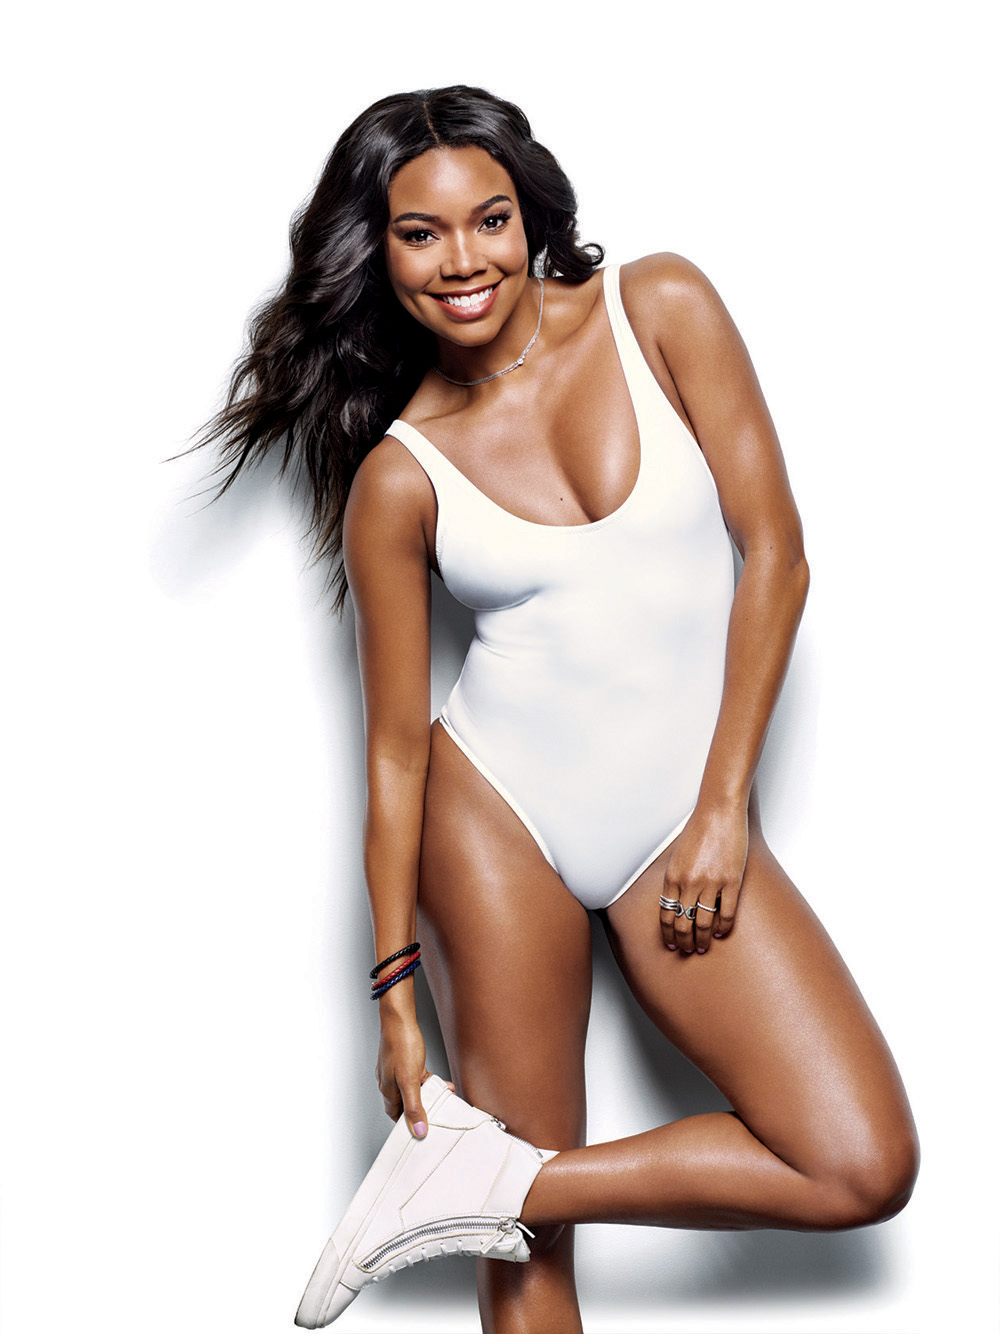 Gabrielle Union nudes (58 fotos), young Sexy, Instagram, panties 2017